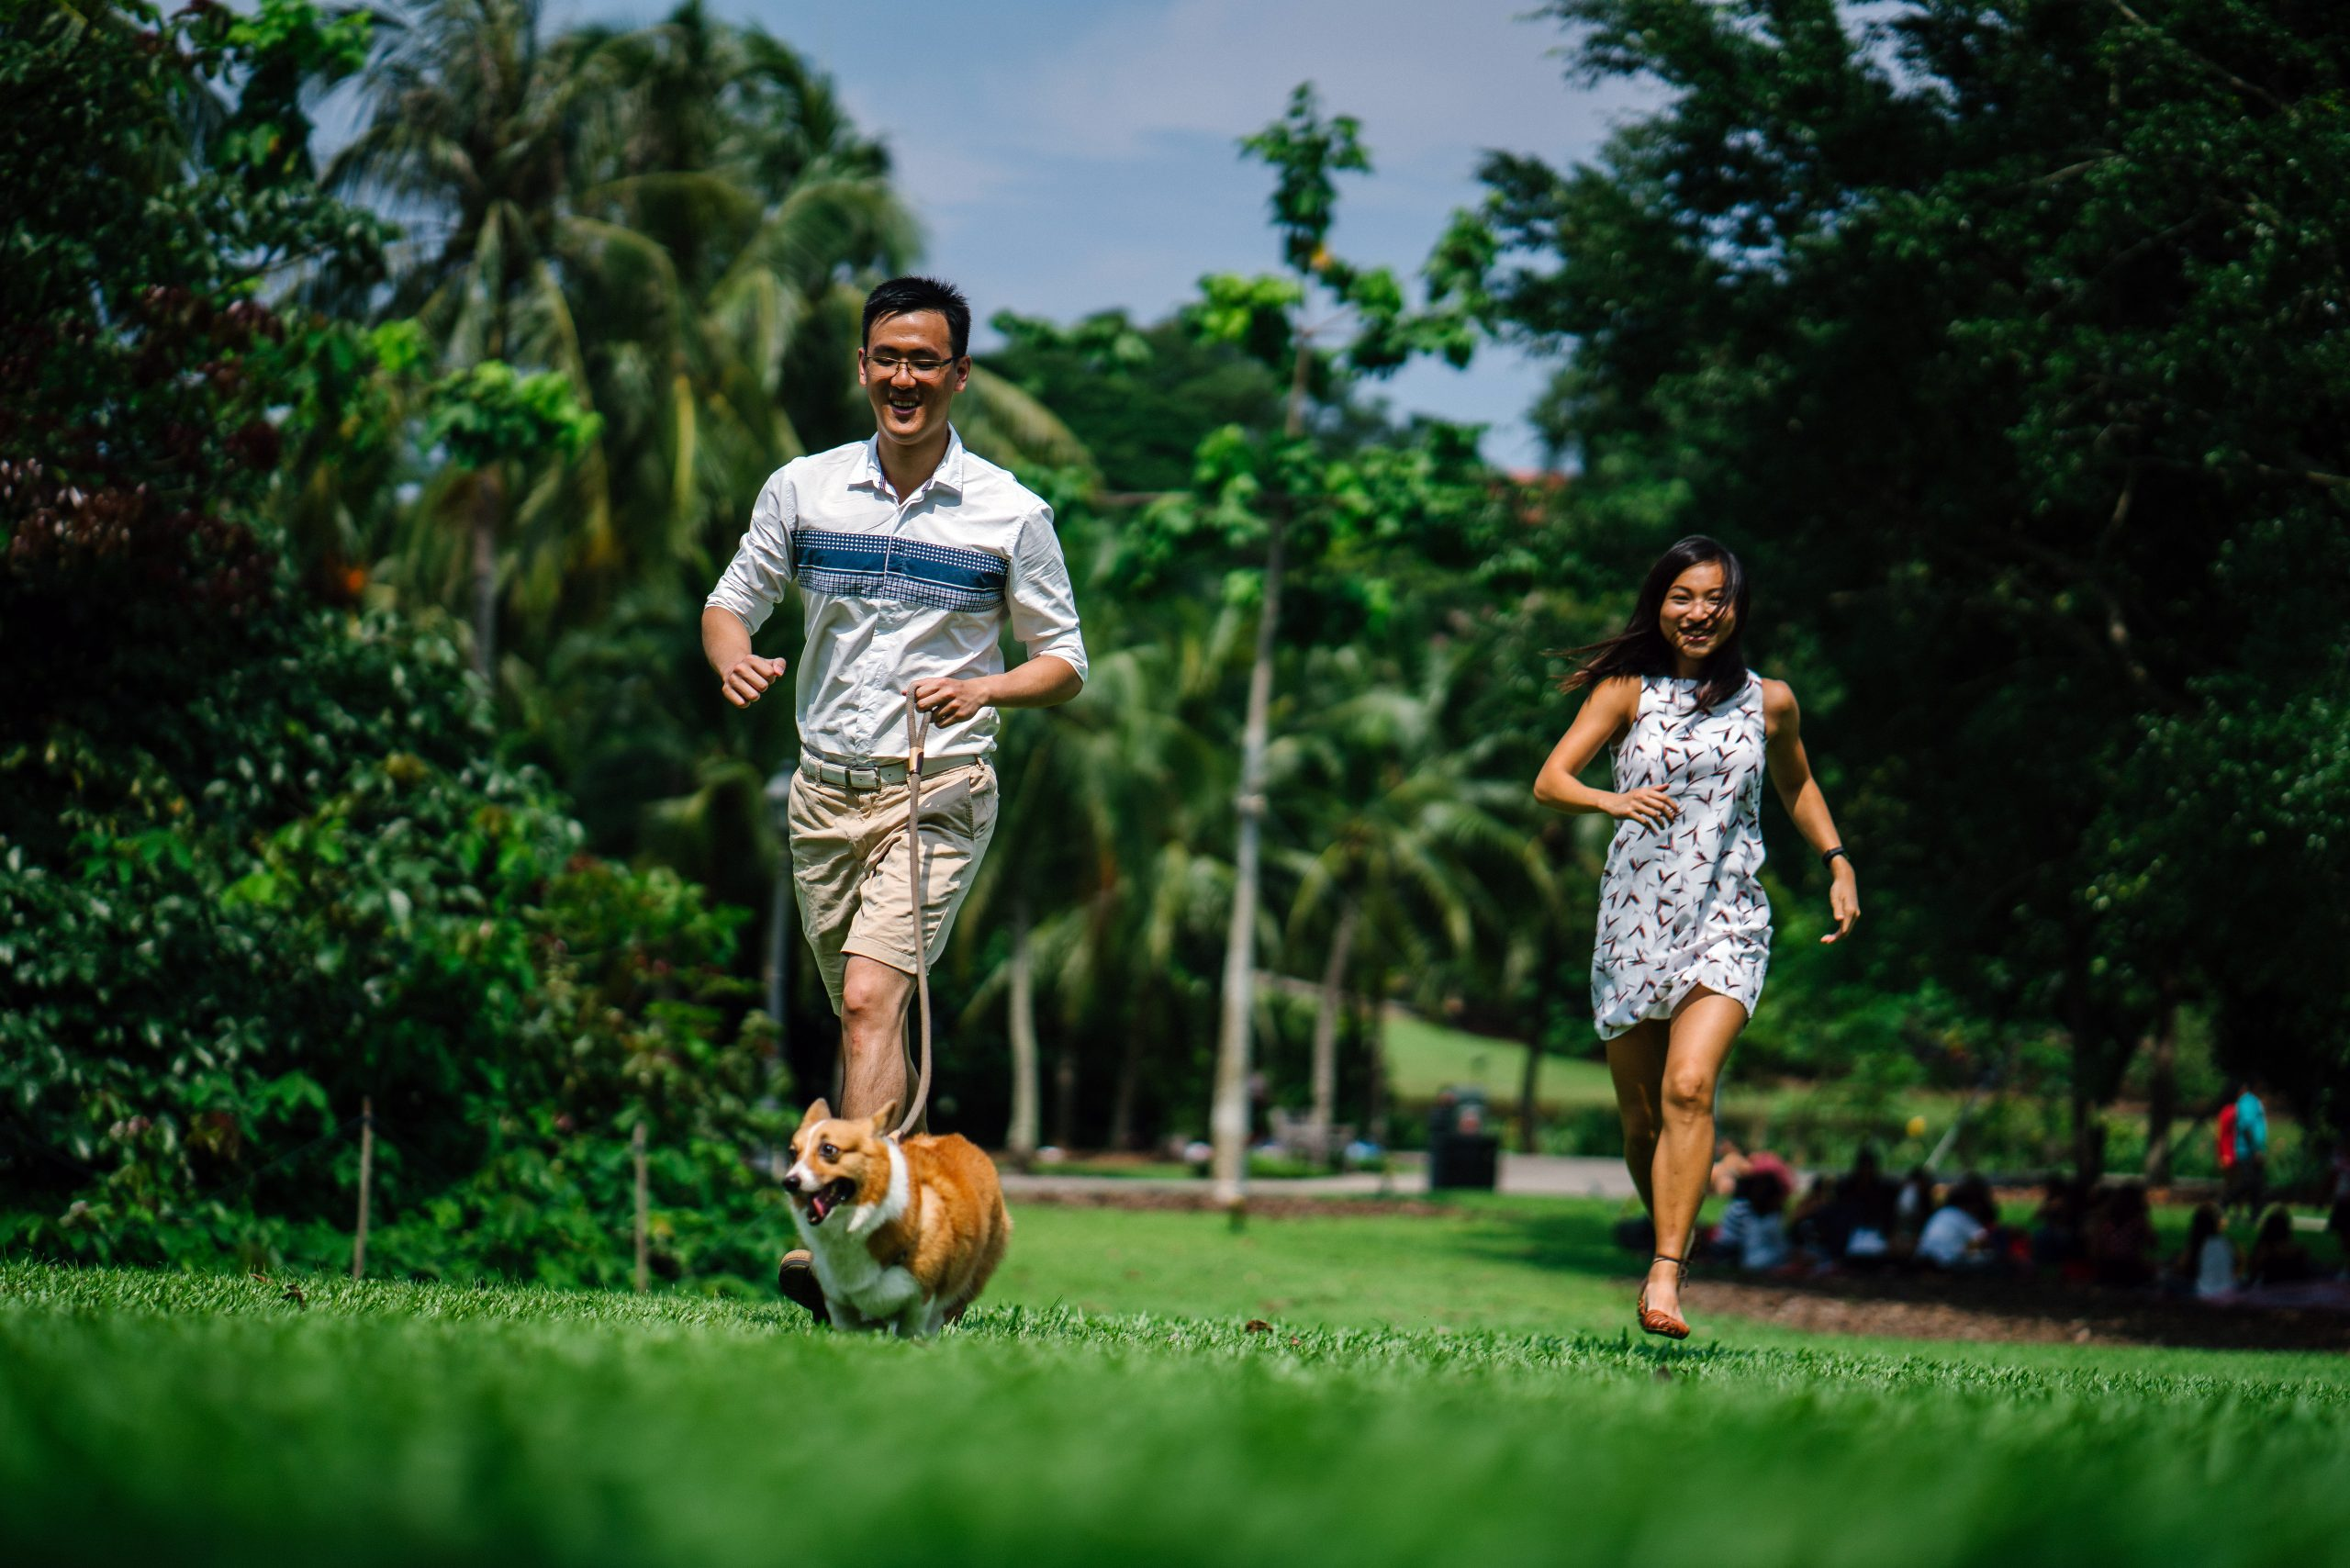 couple running after a dog in a park